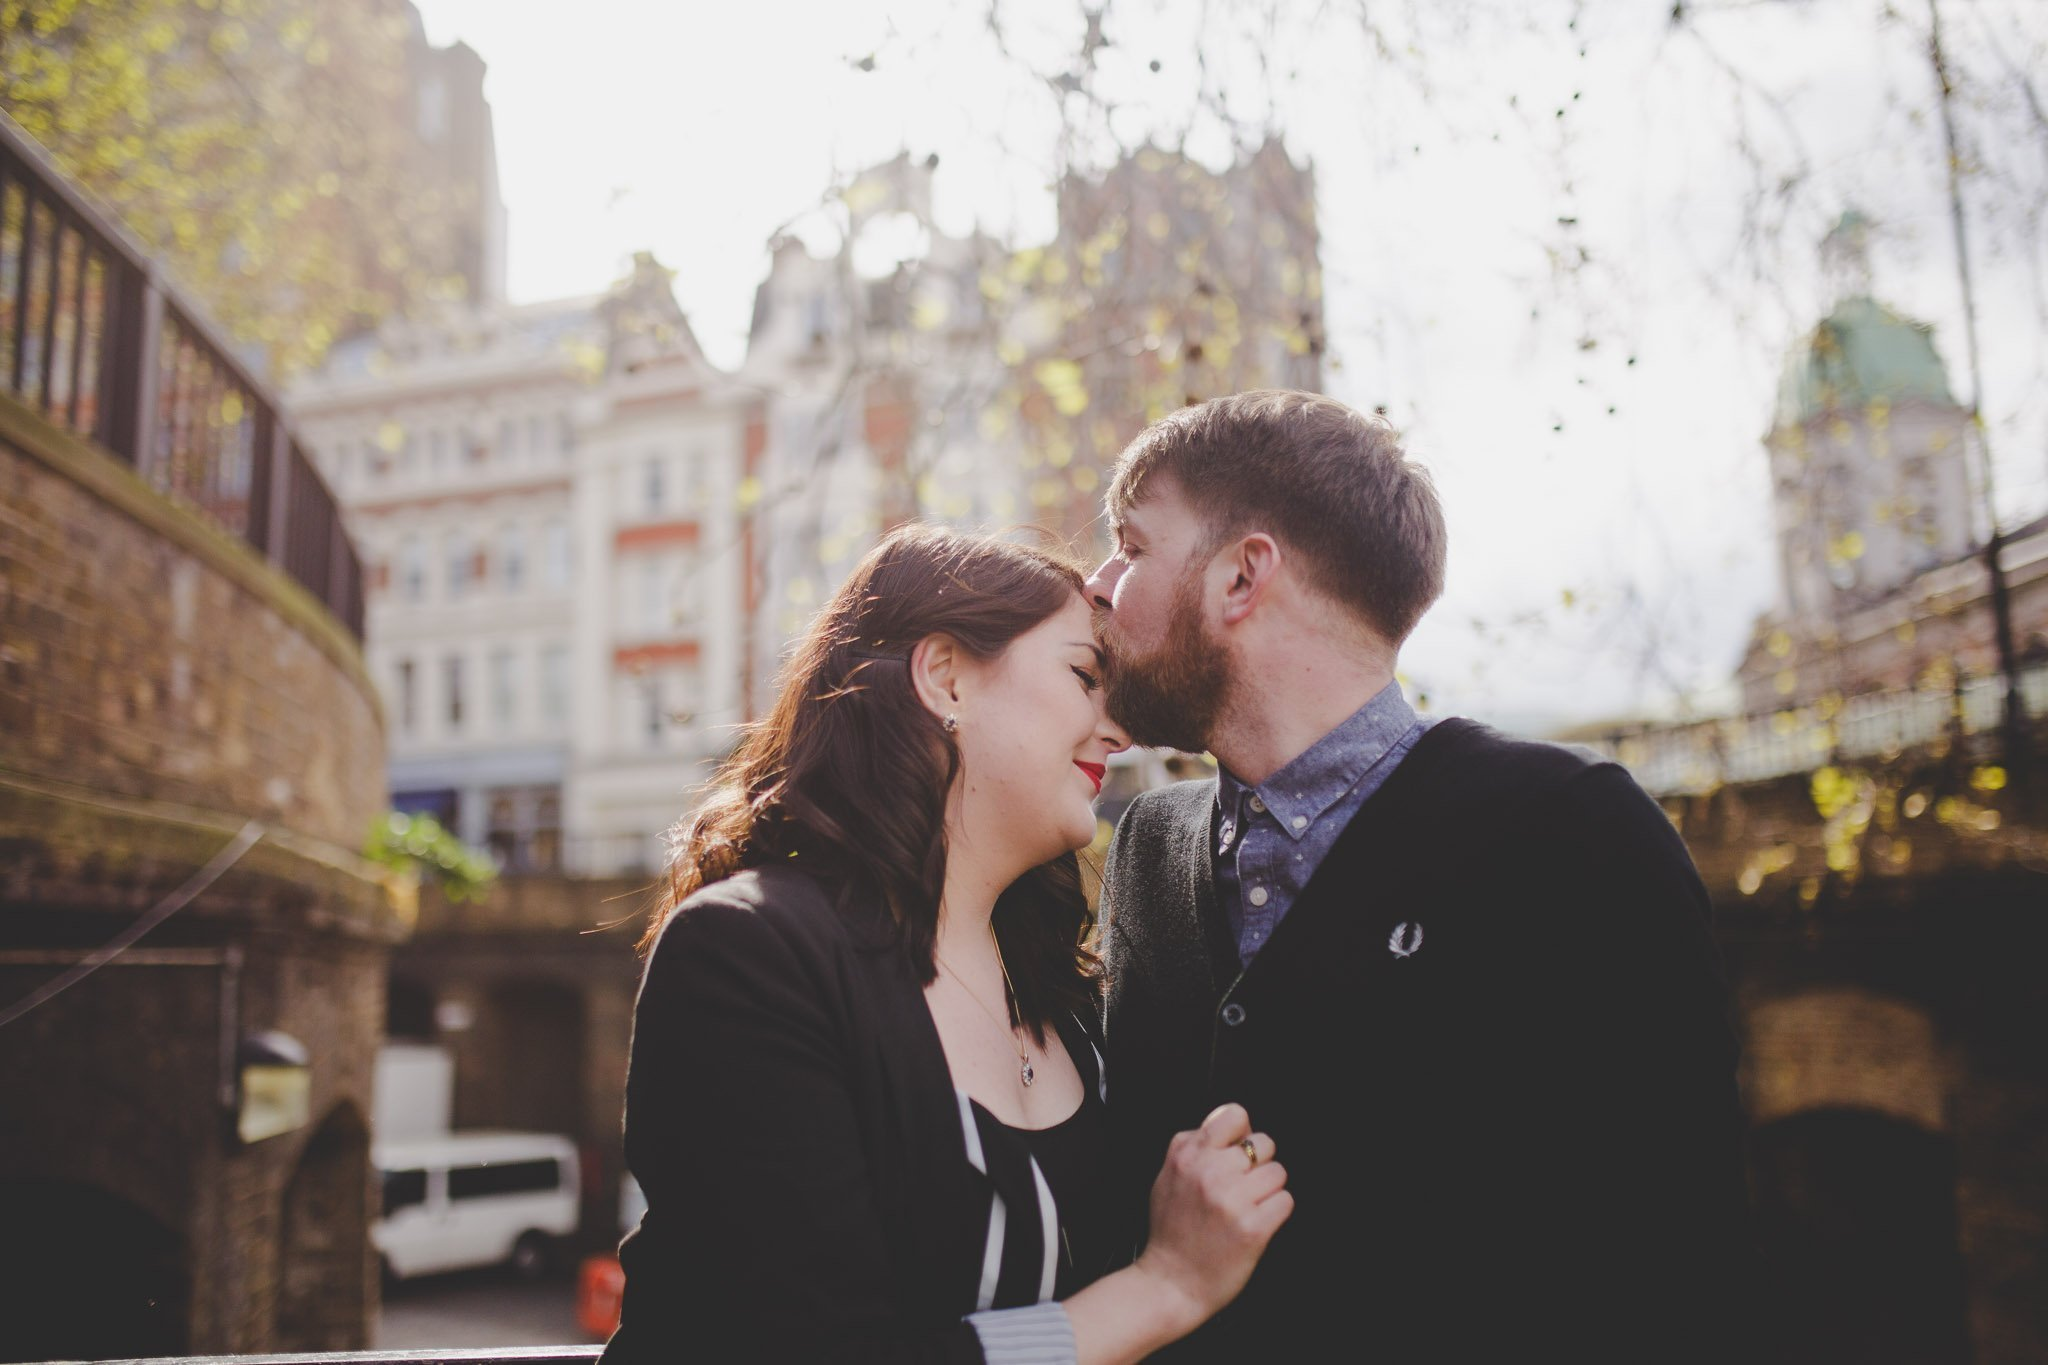 Couple hug and kiss in a street in Clerkenwell London for an engagement shoot. Photography by thatthingyoupluck.